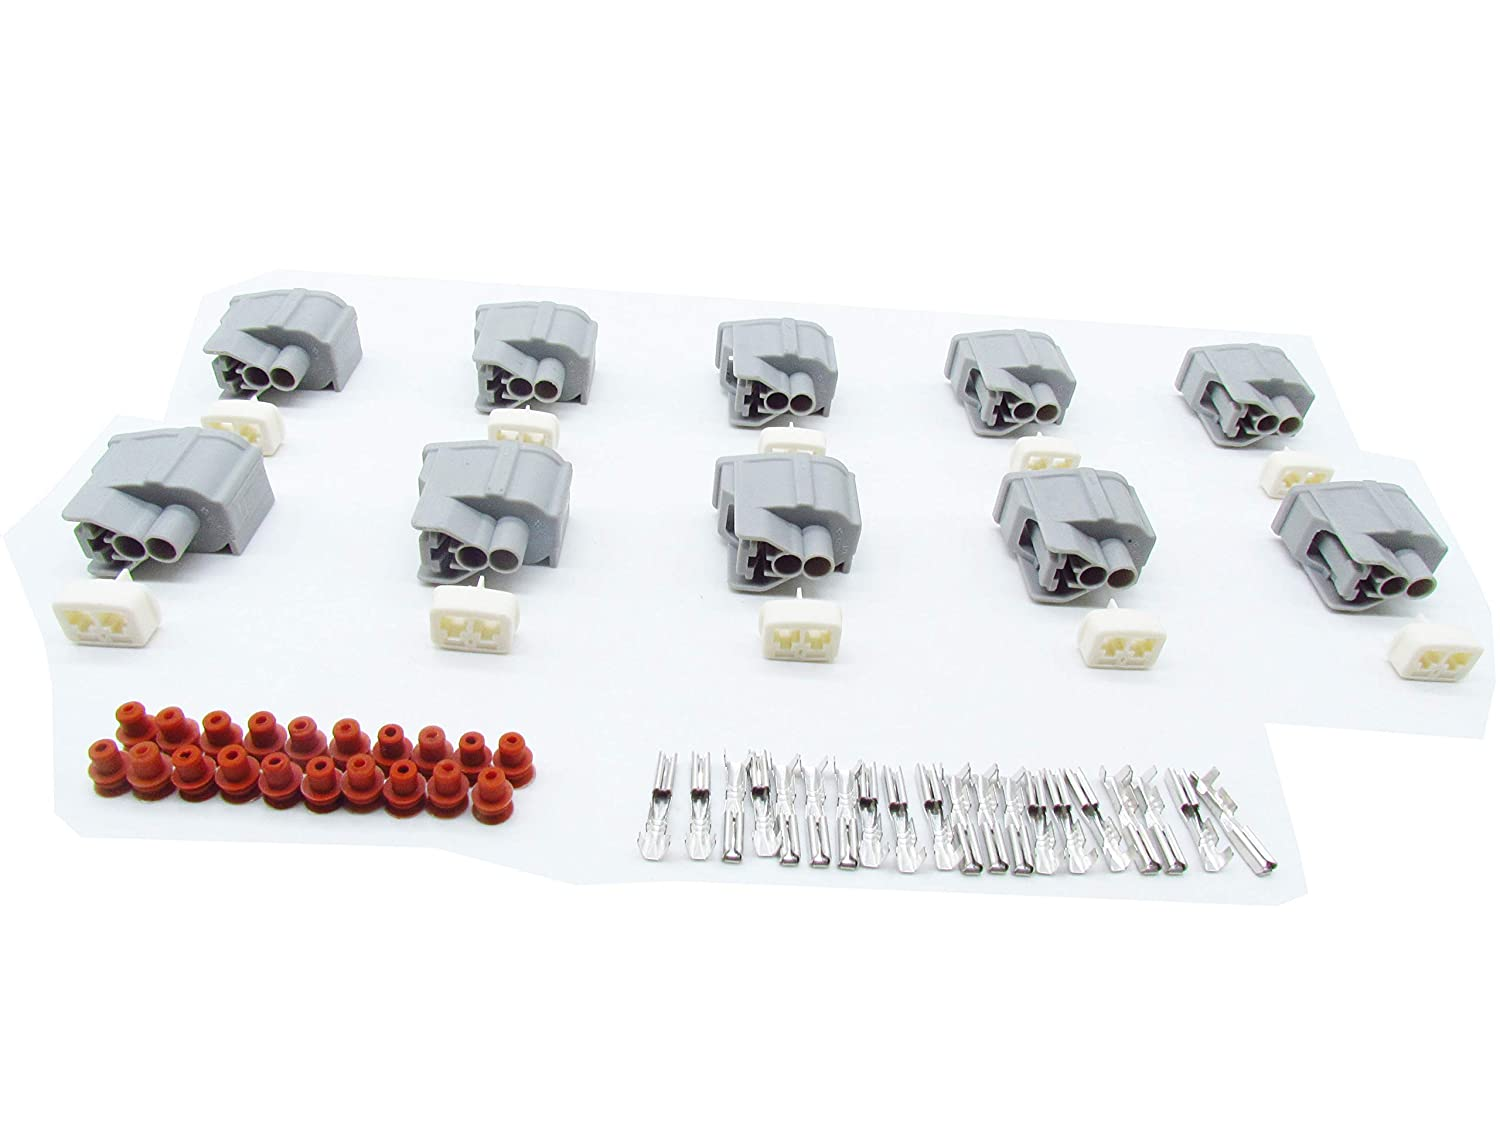 CNKF 5 Sets sumitomo 3 pin female waterproof ignition coil automotive connector 6189-0728